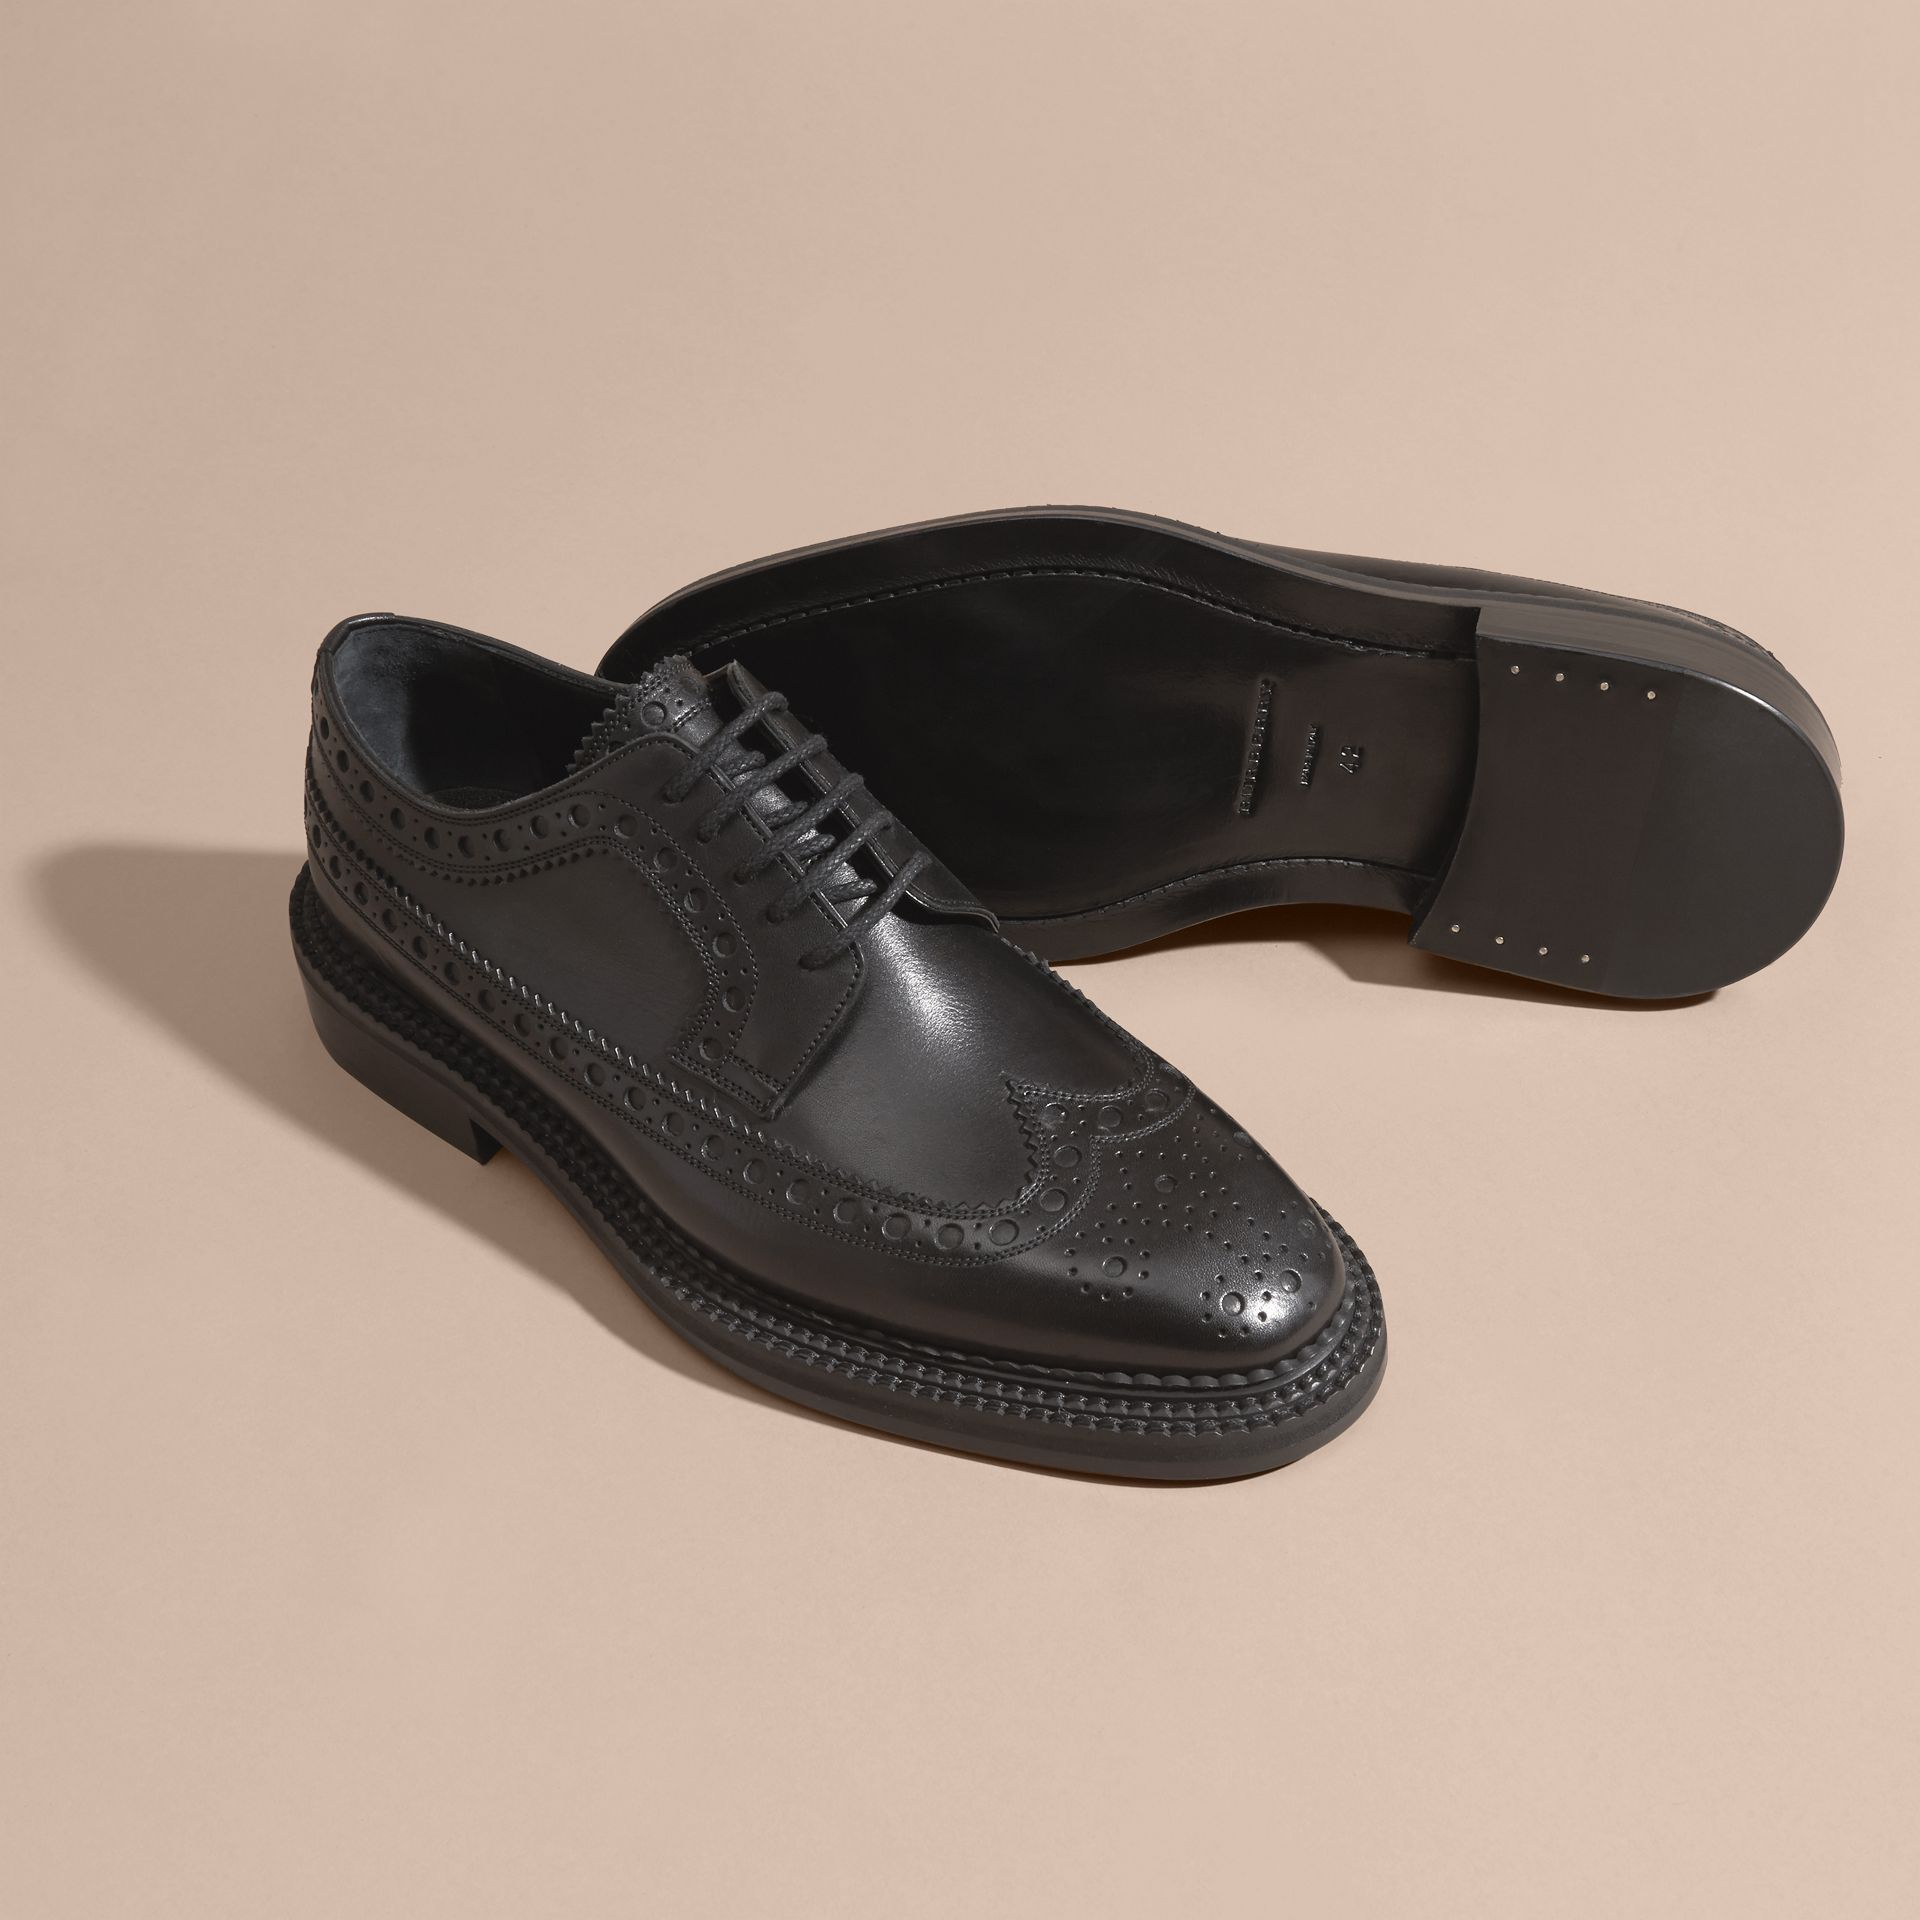 Leather Wingtip Brogues in Black - Men | Burberry - gallery image 5